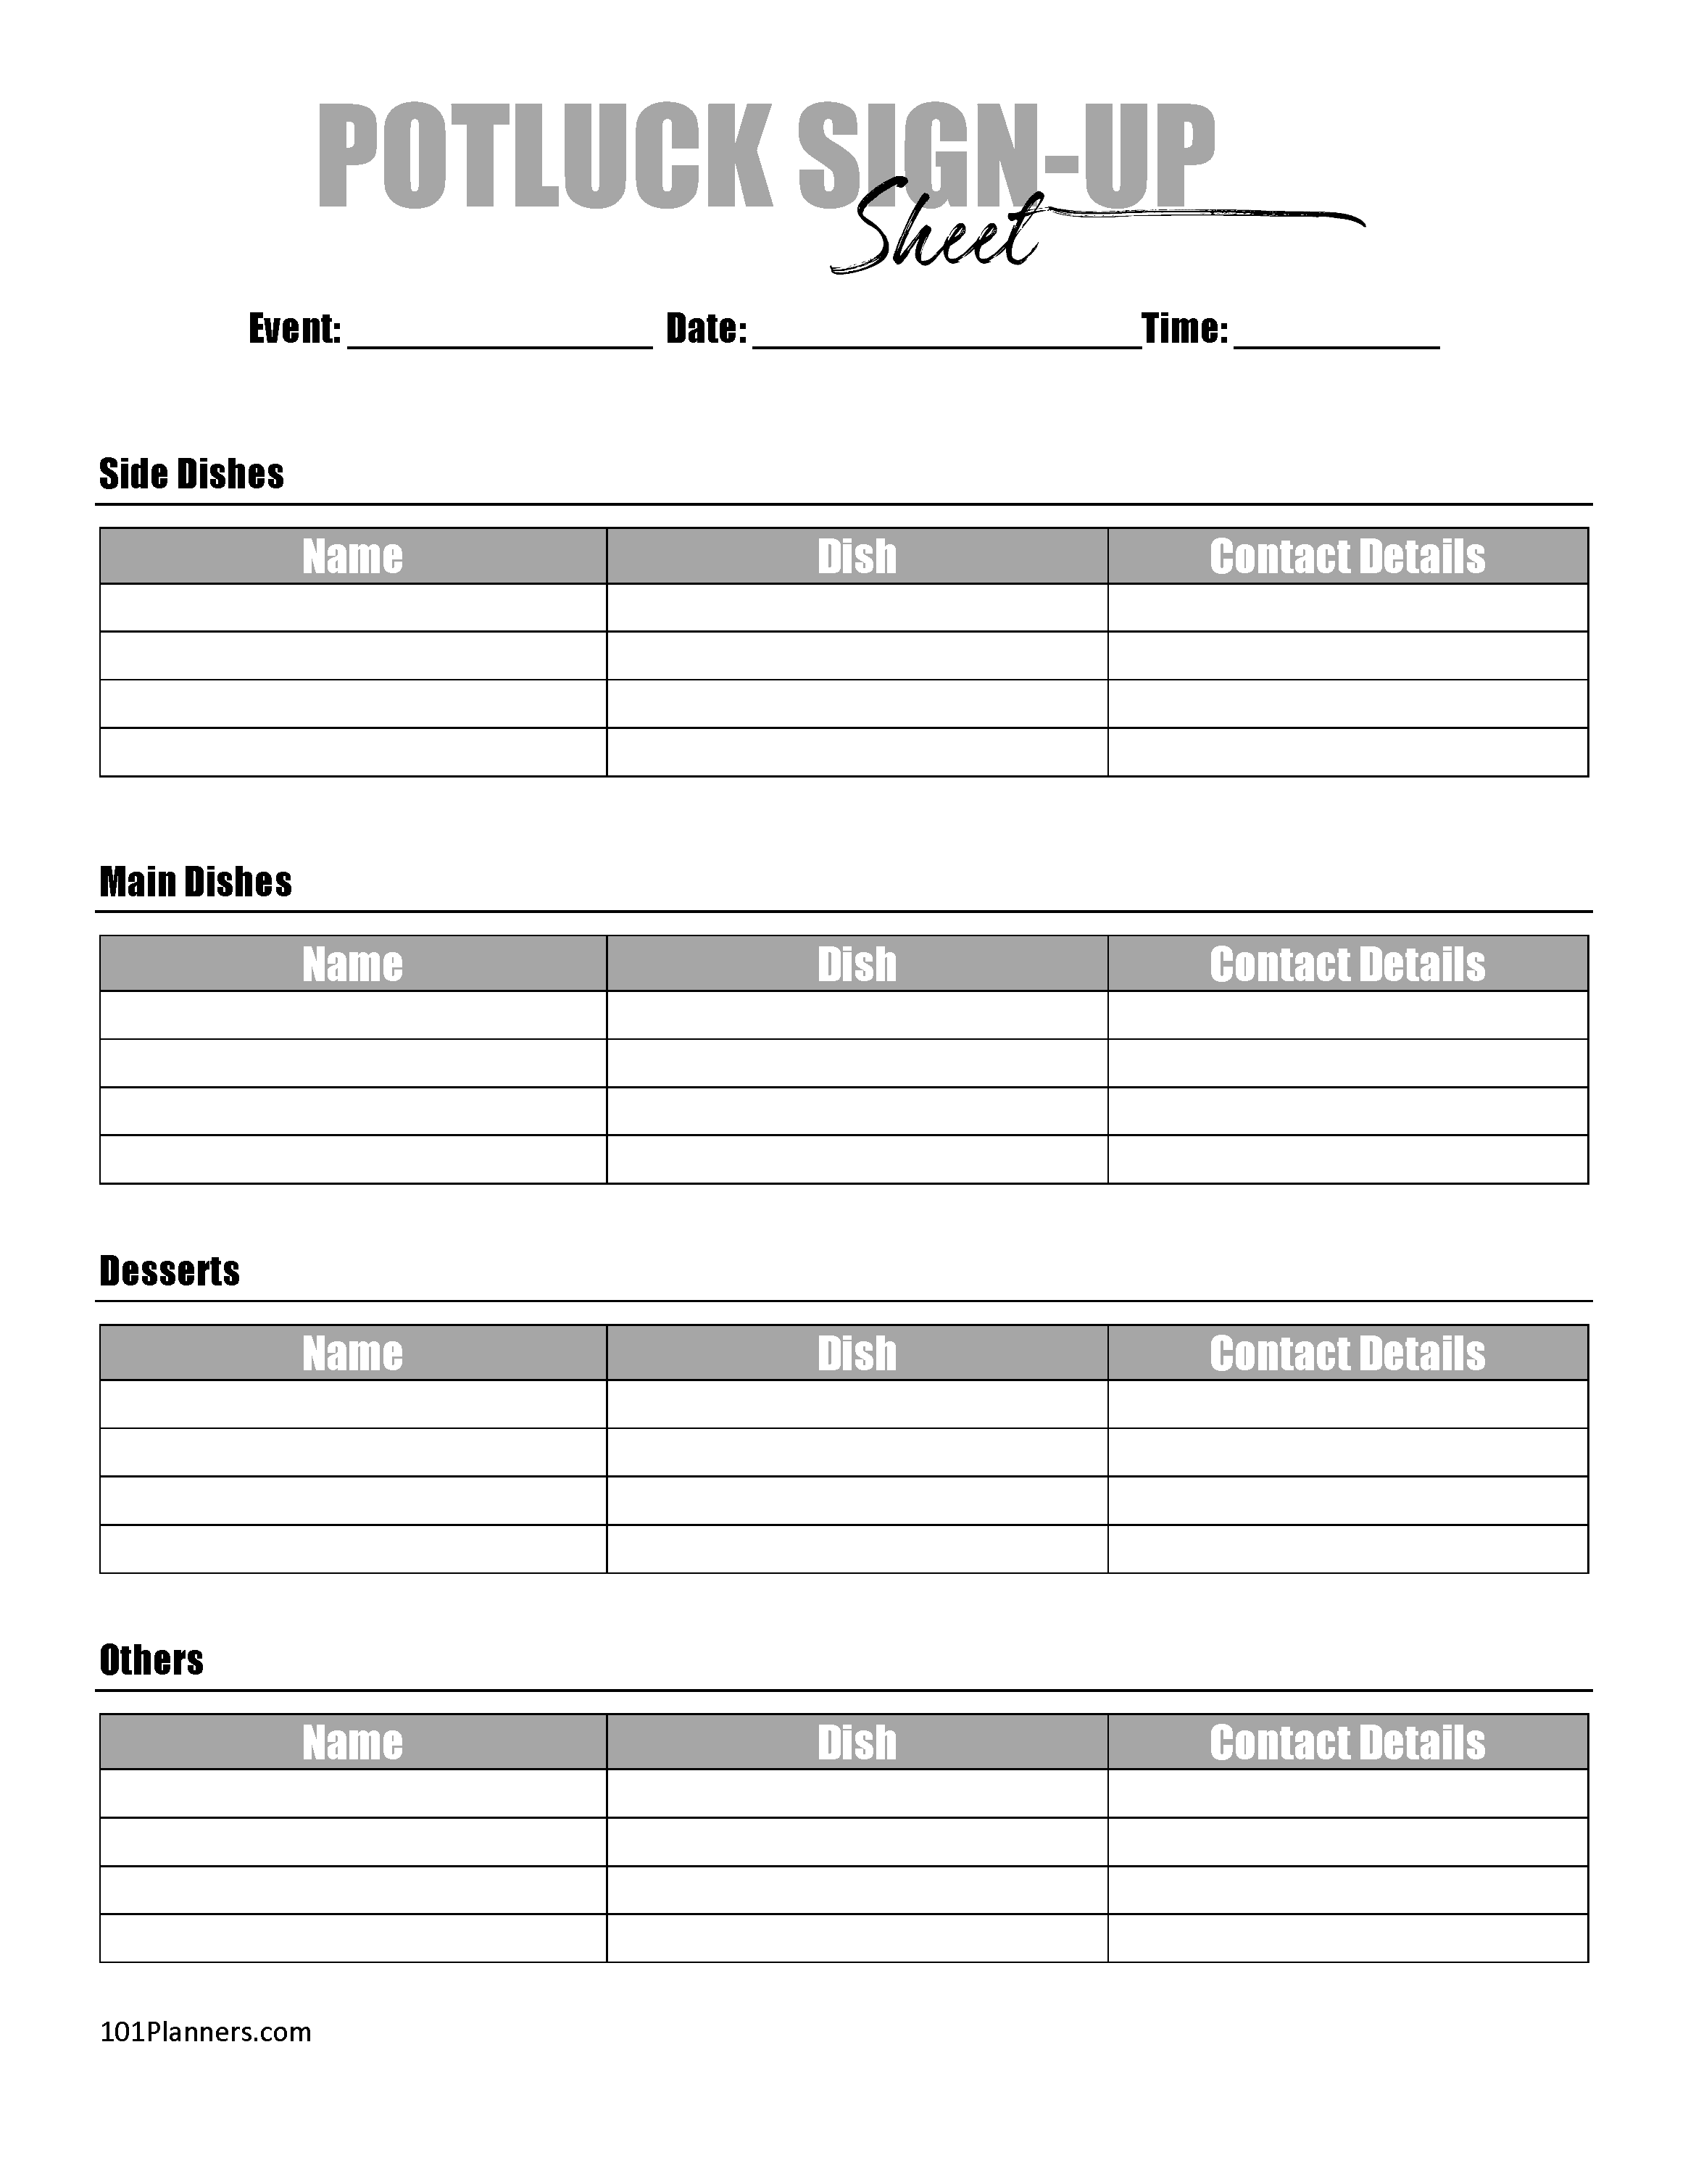 FREE Printable Potluck Sign Up Sheet | Editable | Instant ...